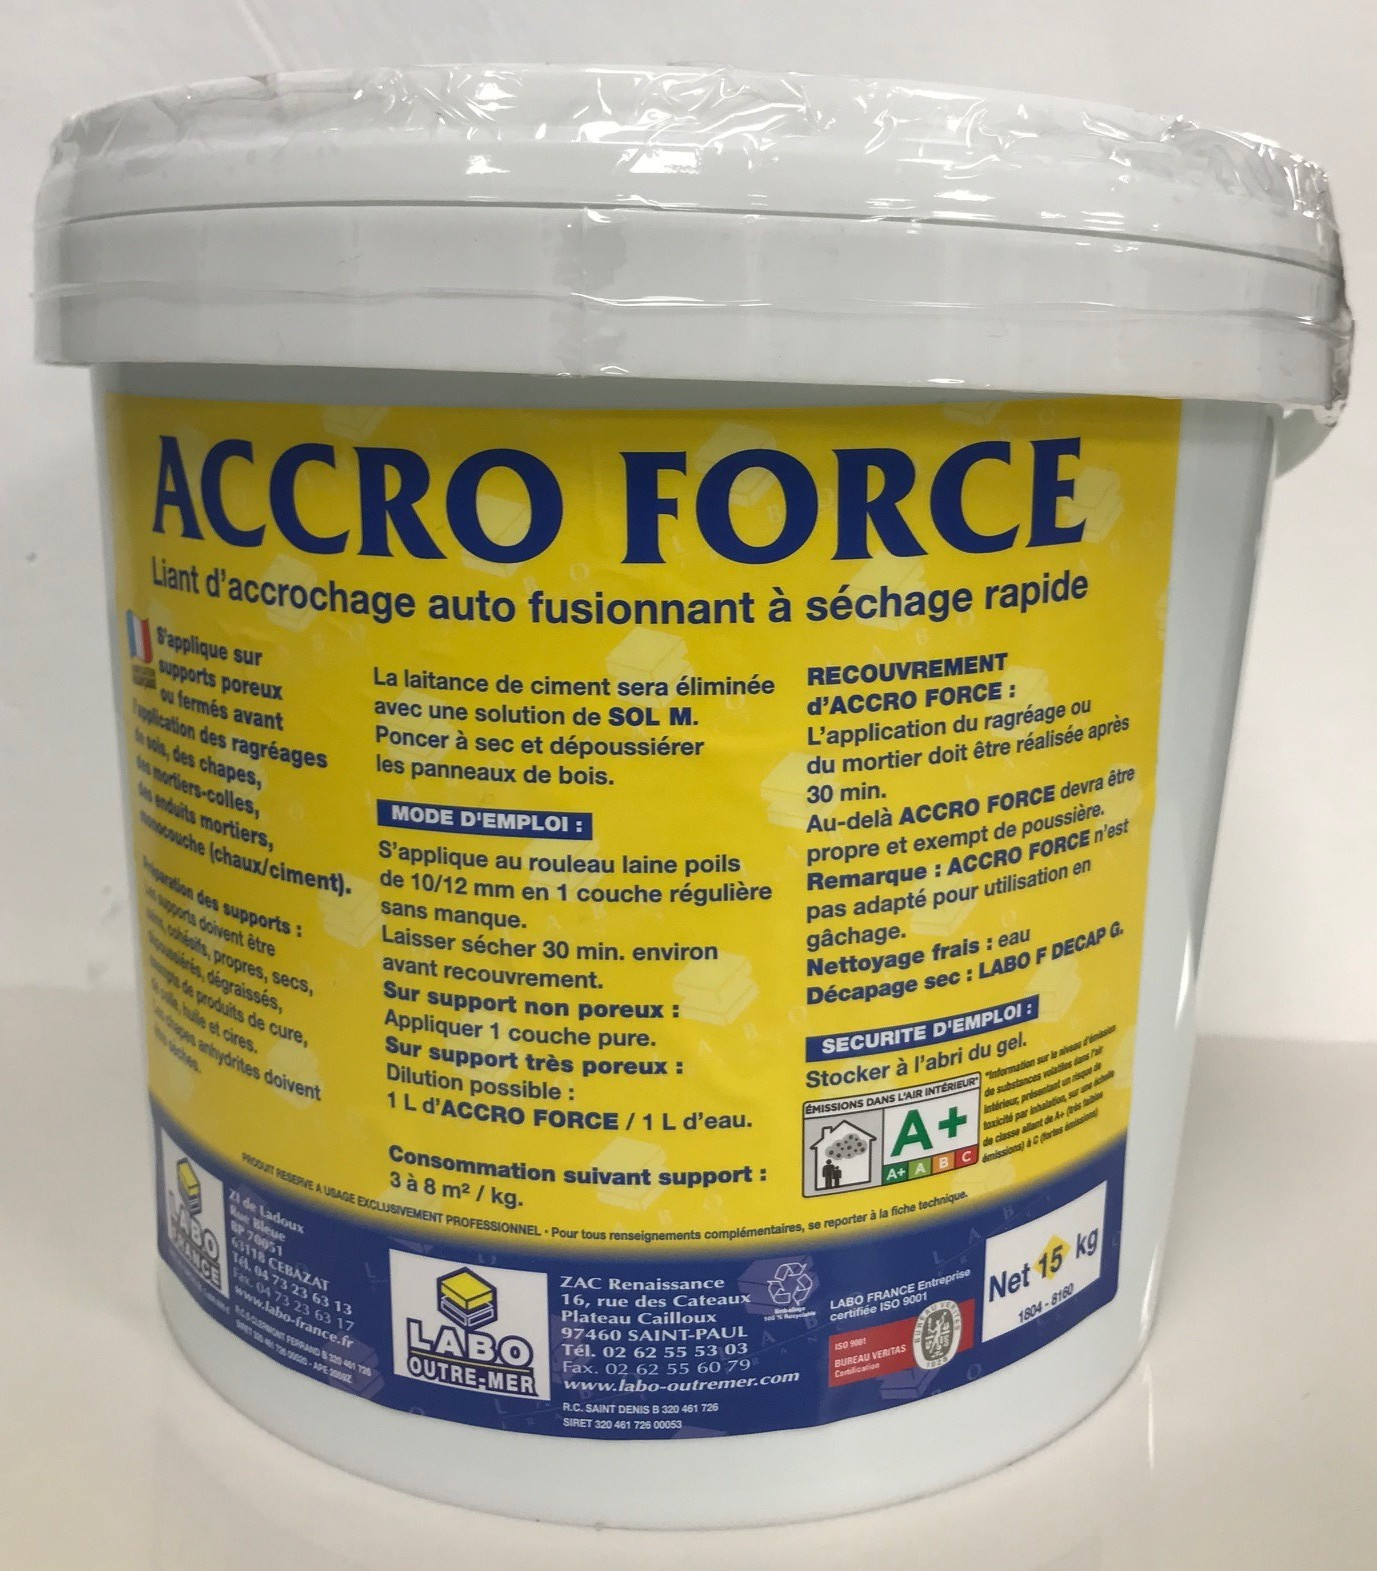 Colle carrelage - LABO FRANCE accro force 5 kg - Photo principale